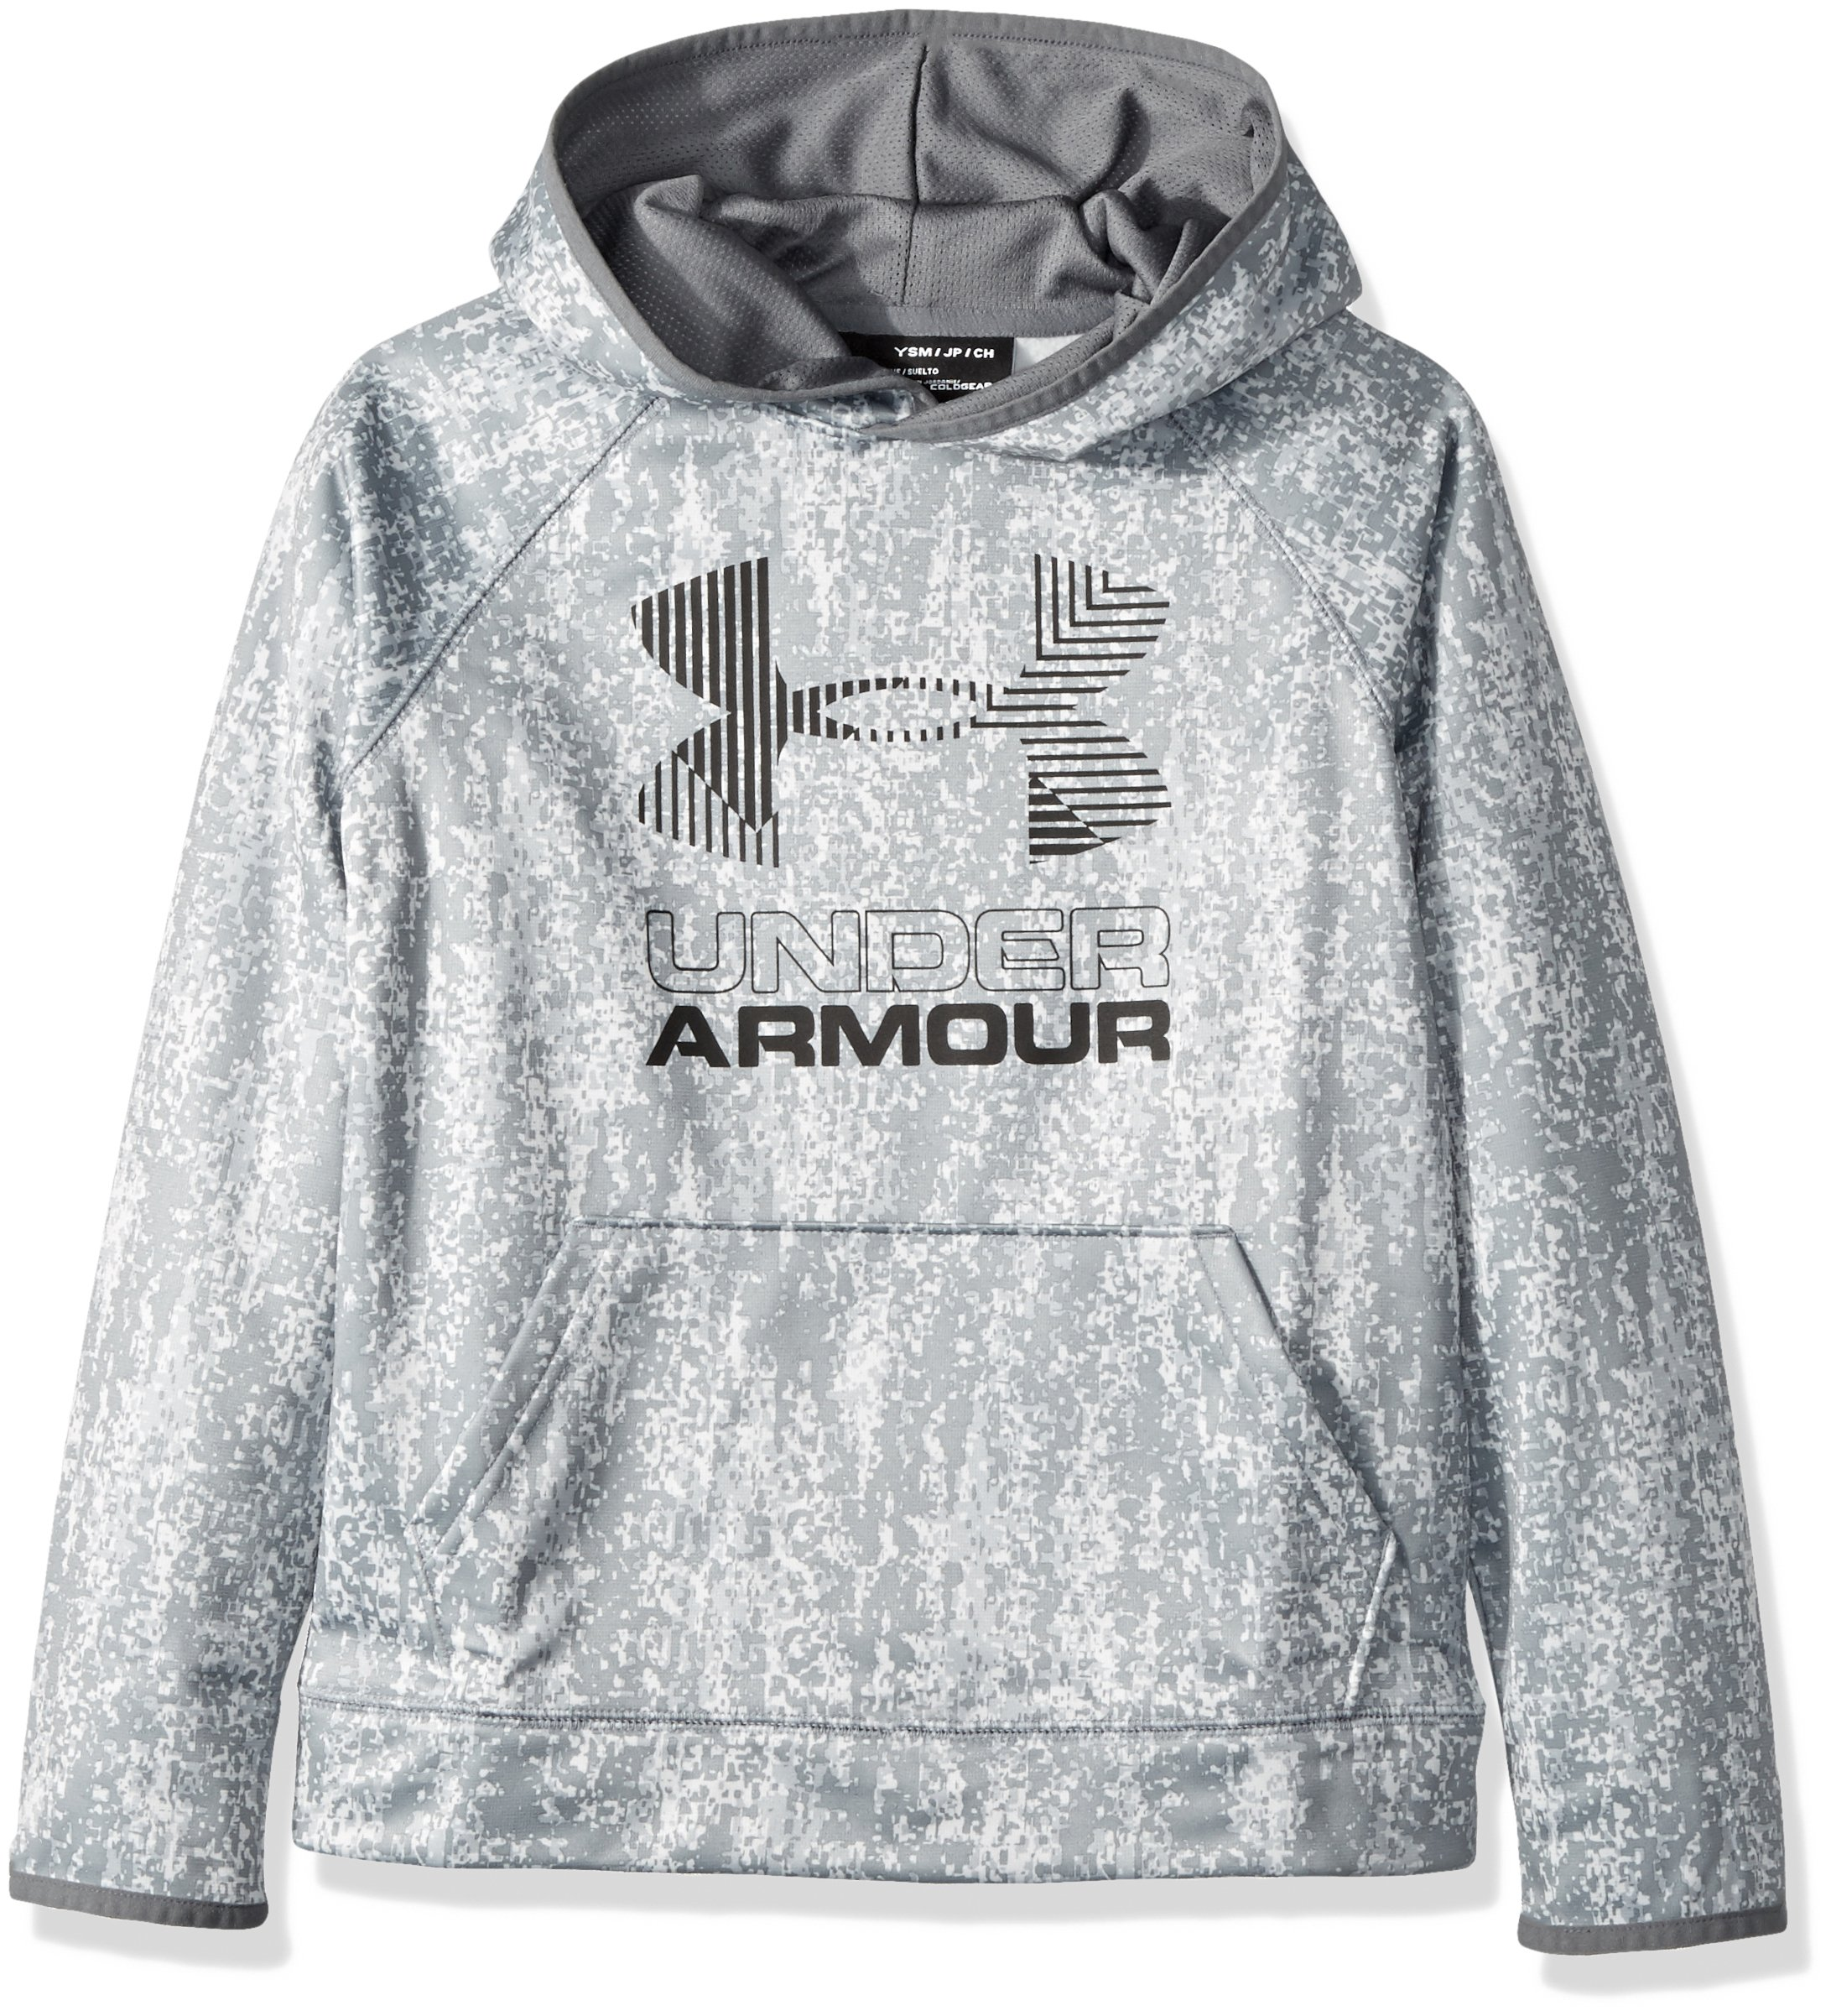 Under Armour Boys' Armour Fleece Printed Big Logo Hoodie, Overcast Gray /Graphite, Youth Small by Under Armour